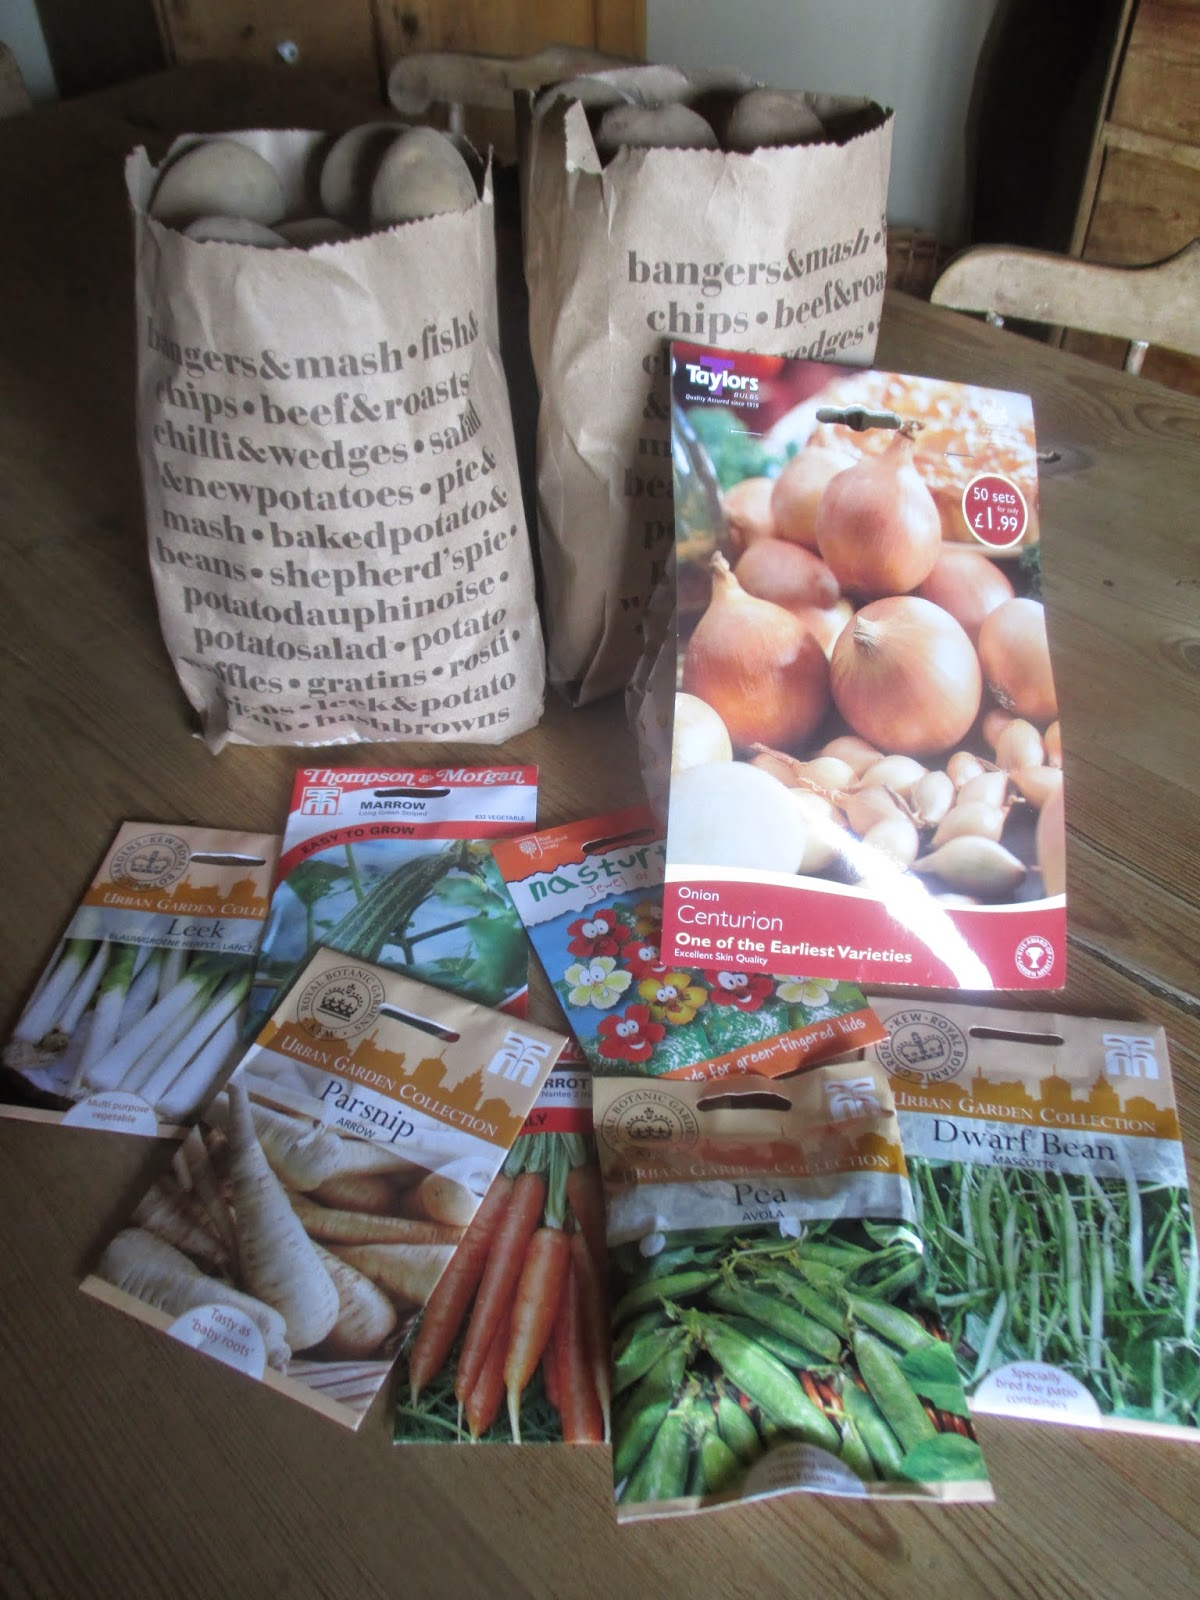 Wartime Kitchen Garden Dvd Remembering The Old Ways A Week Of Special Days